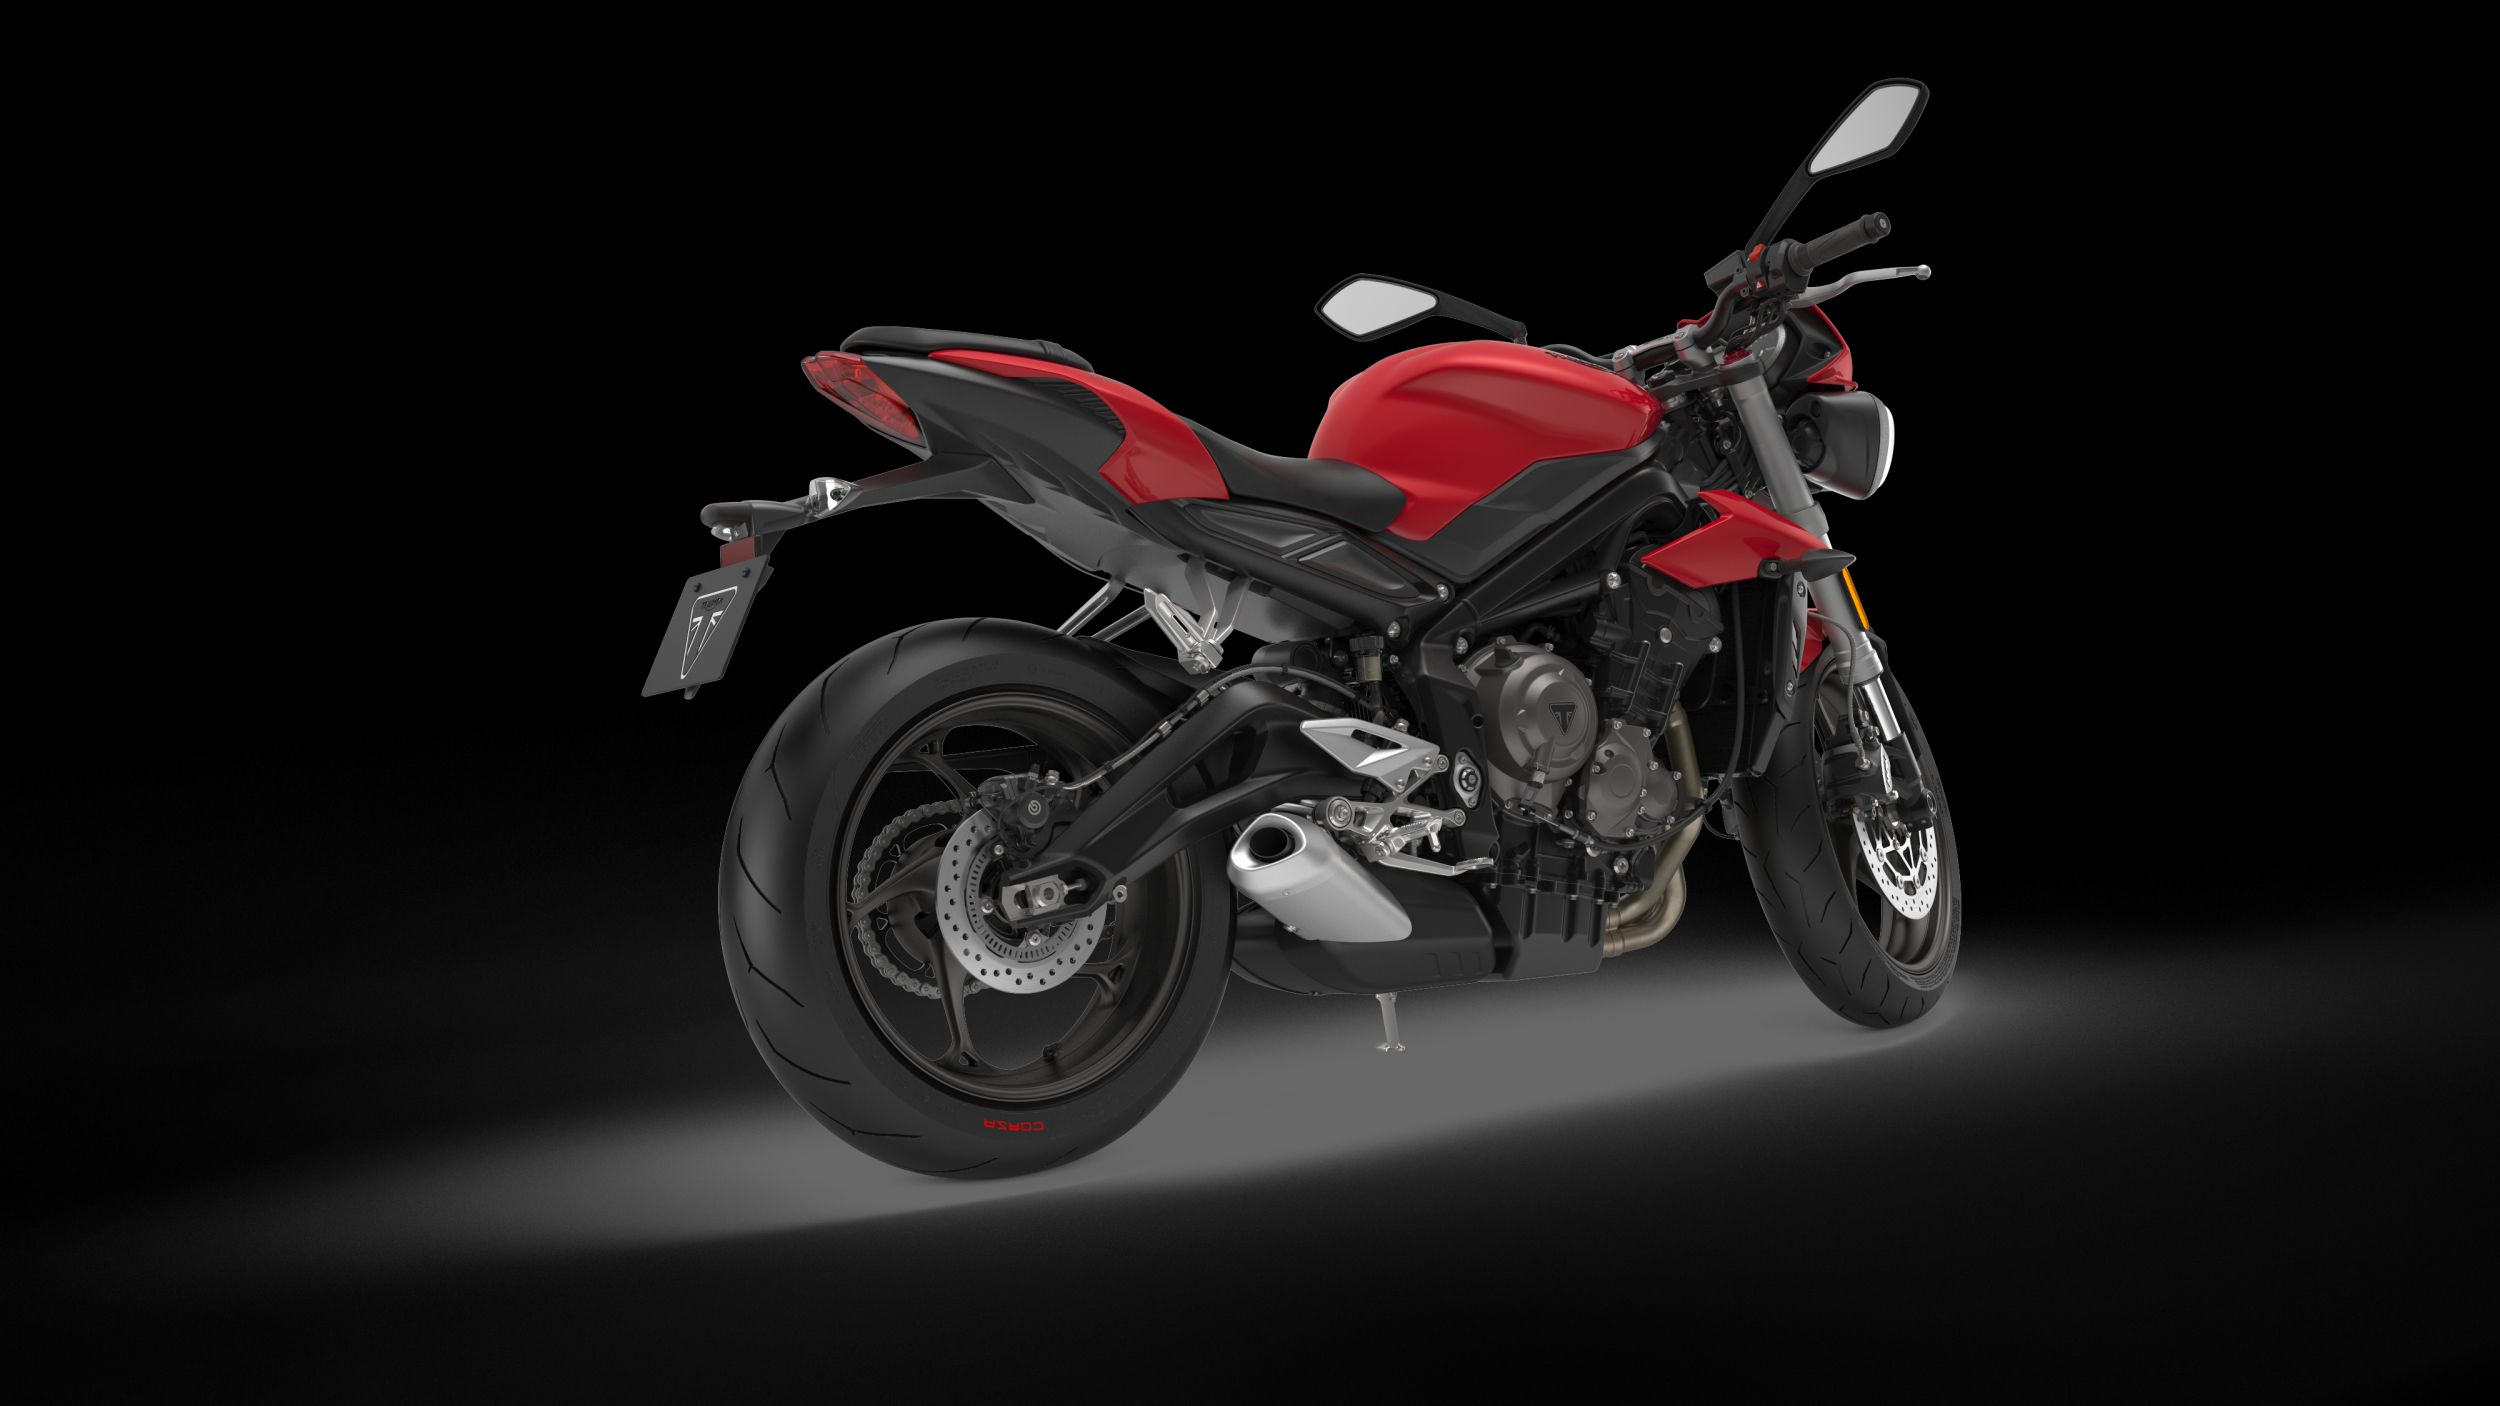 triumph street triple s all technical data of the model street triple s from triumph. Black Bedroom Furniture Sets. Home Design Ideas